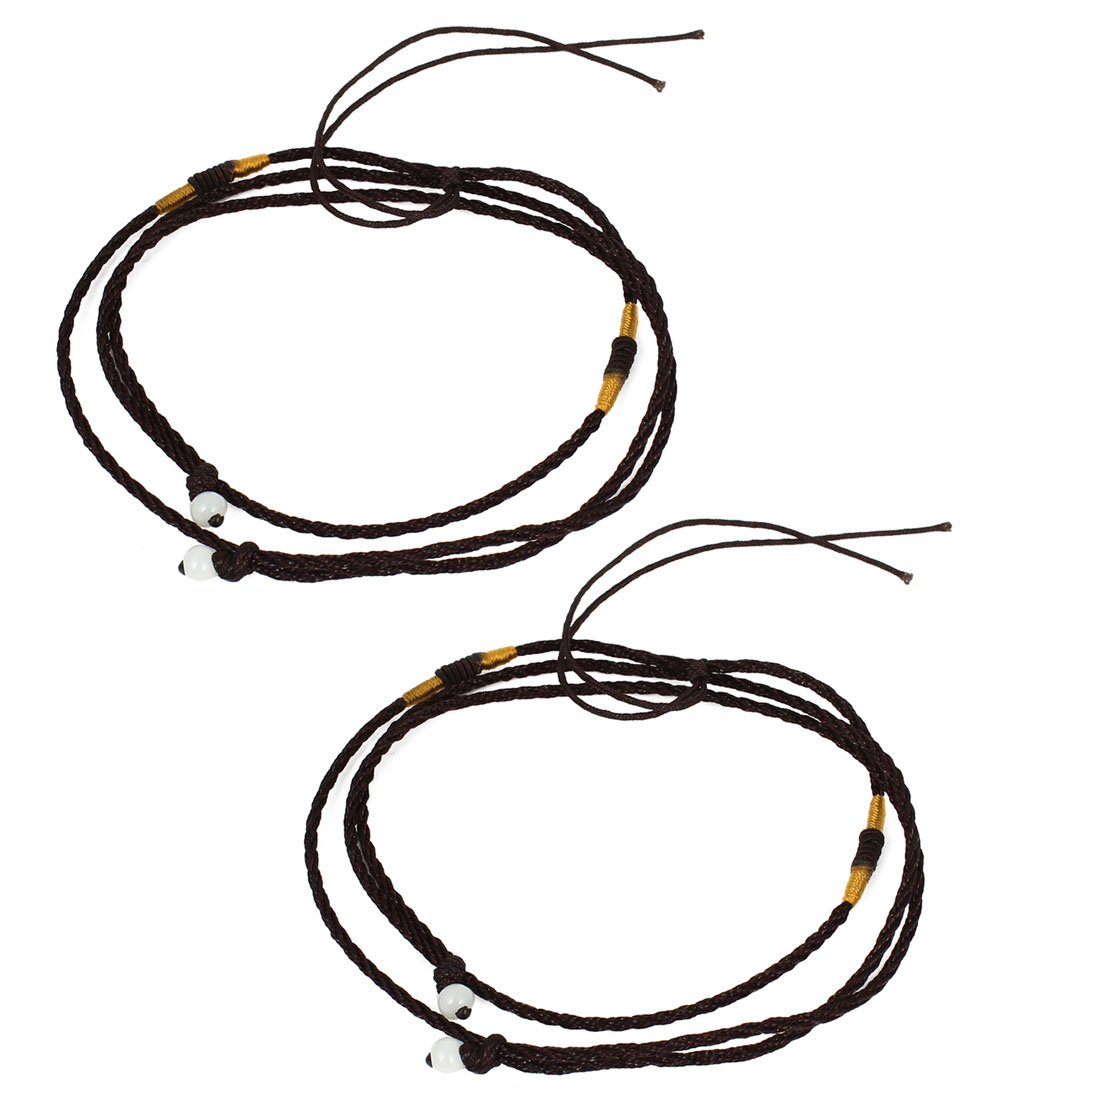 2Pcs Dark Brown Round Beads Decor Adjustable Braided Nylon DIY Necklace Pendant String Rope